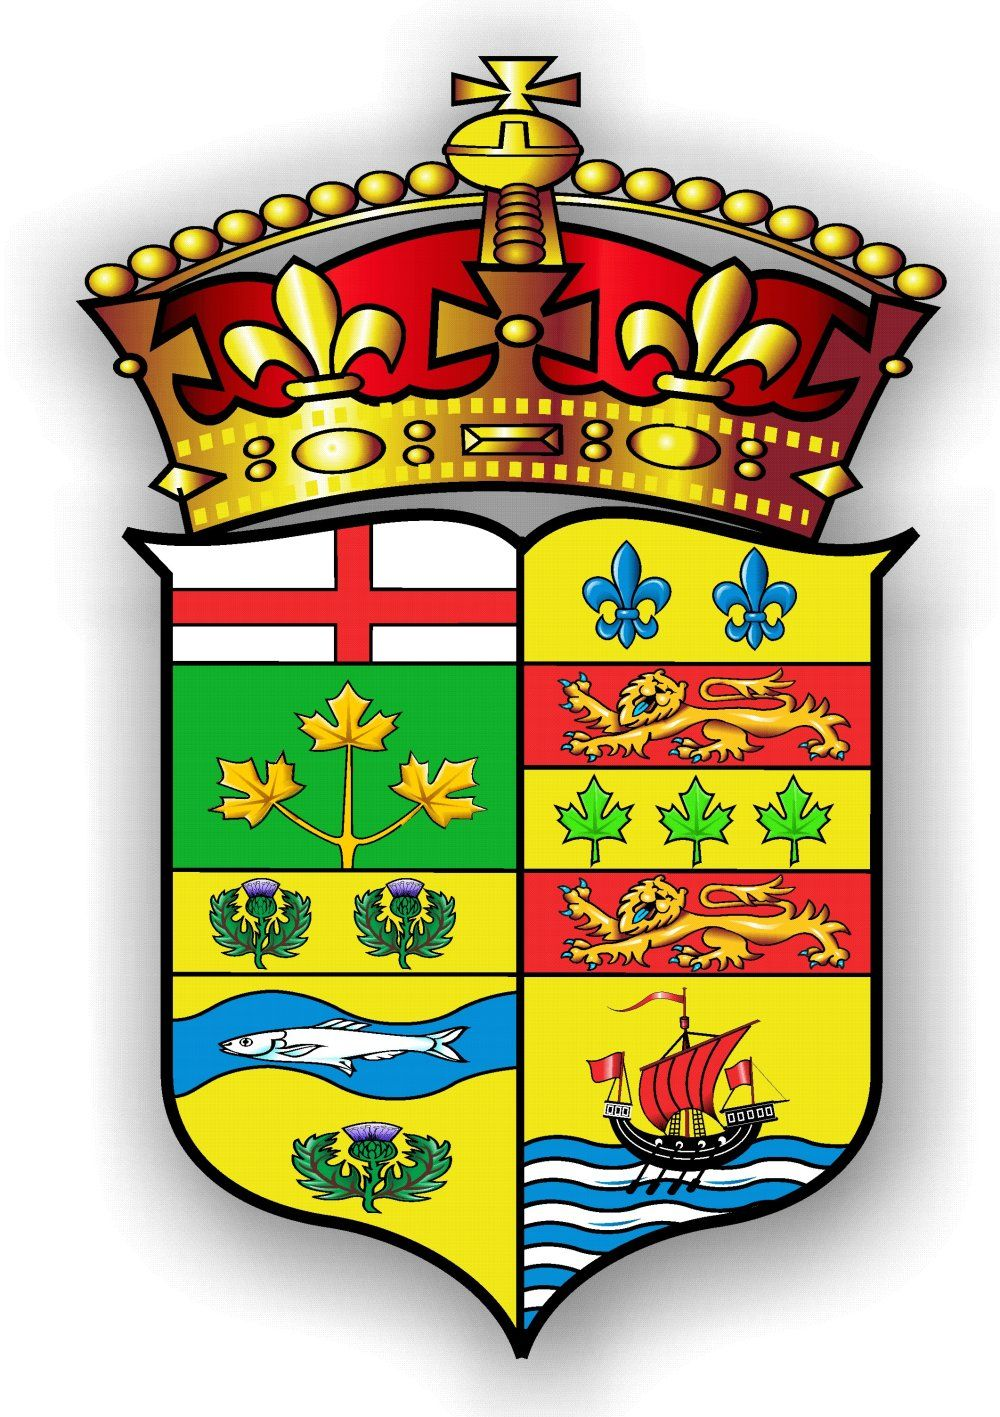 Coat of arm symbols elwood coat of arms of canada genealogy coat of arm symbols elwood coat of arms of canada biocorpaavc Choice Image